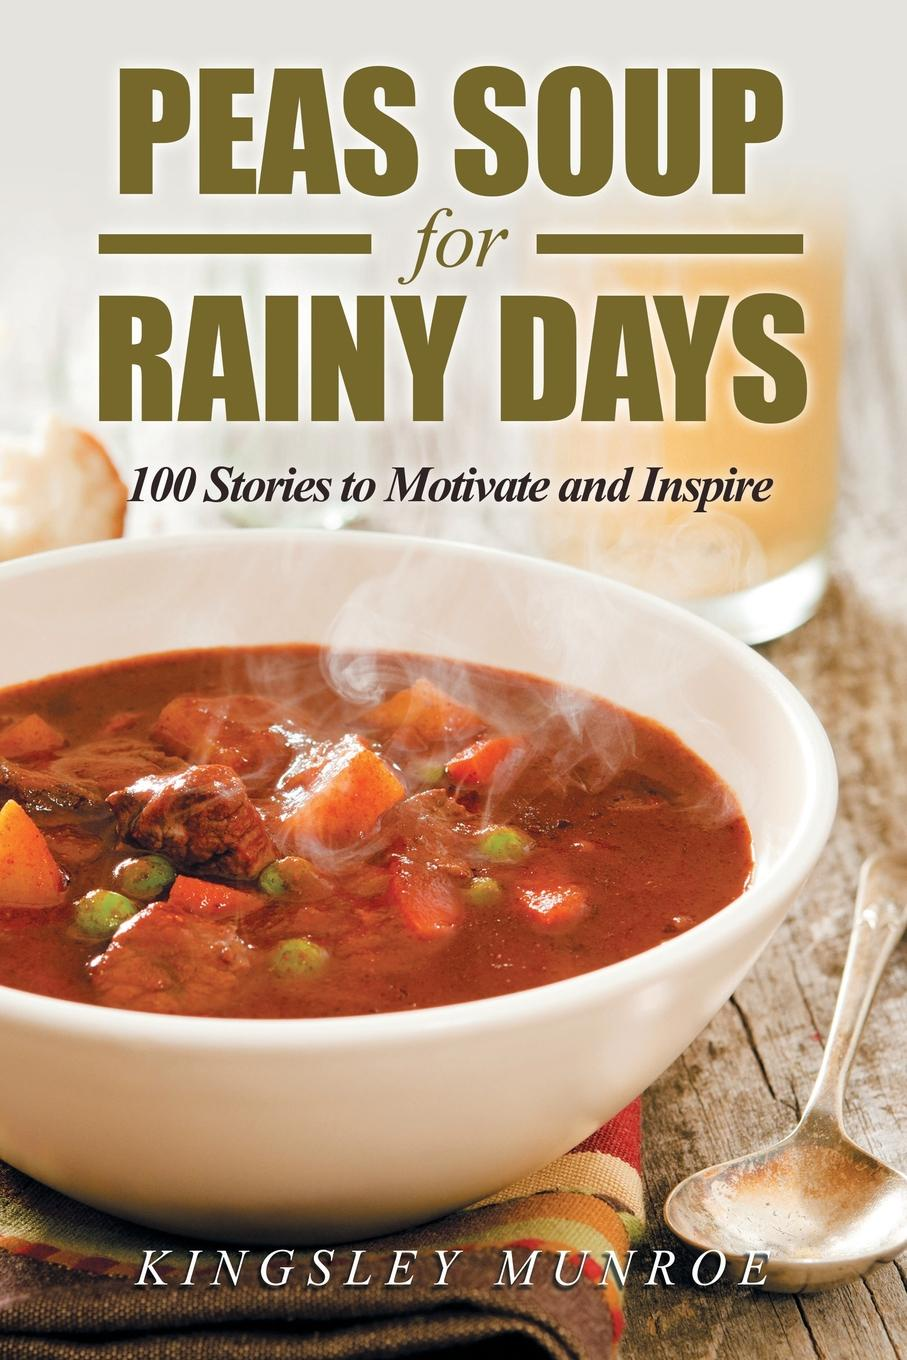 Kingsley Munroe Peas Soup for Rainy Days. 100 Stories to Motivate and Inspire nina rae springfields the power of hope